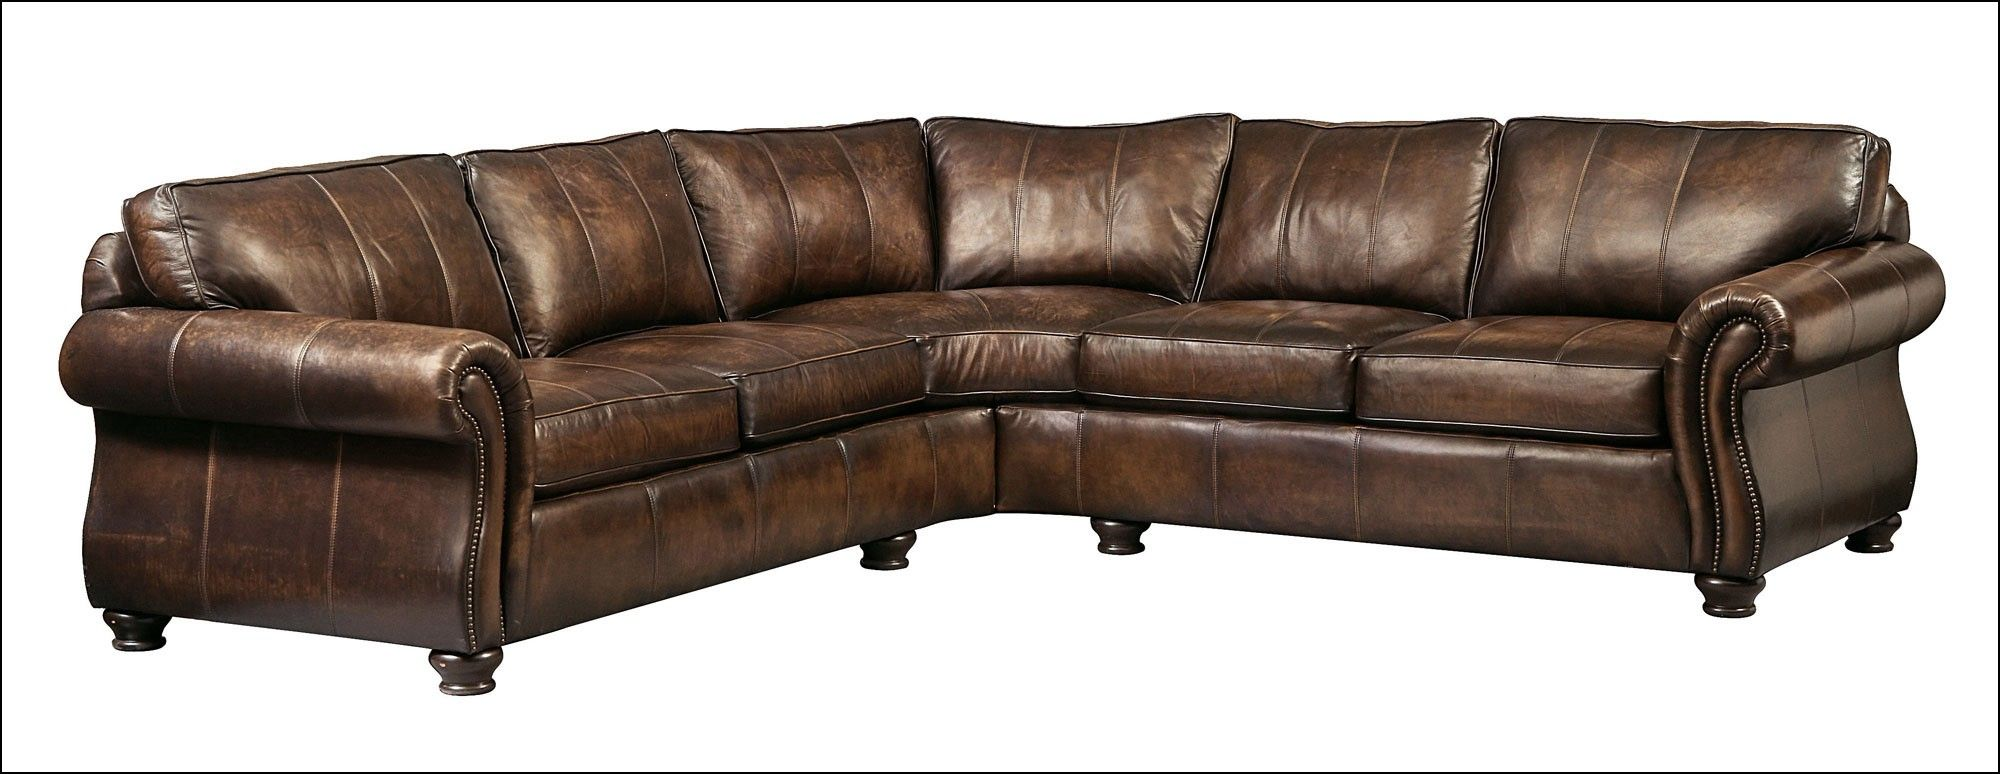 Awesome Bernhardt Leather Sofa Taraba Home Review Download Free Architecture Designs Sospemadebymaigaardcom